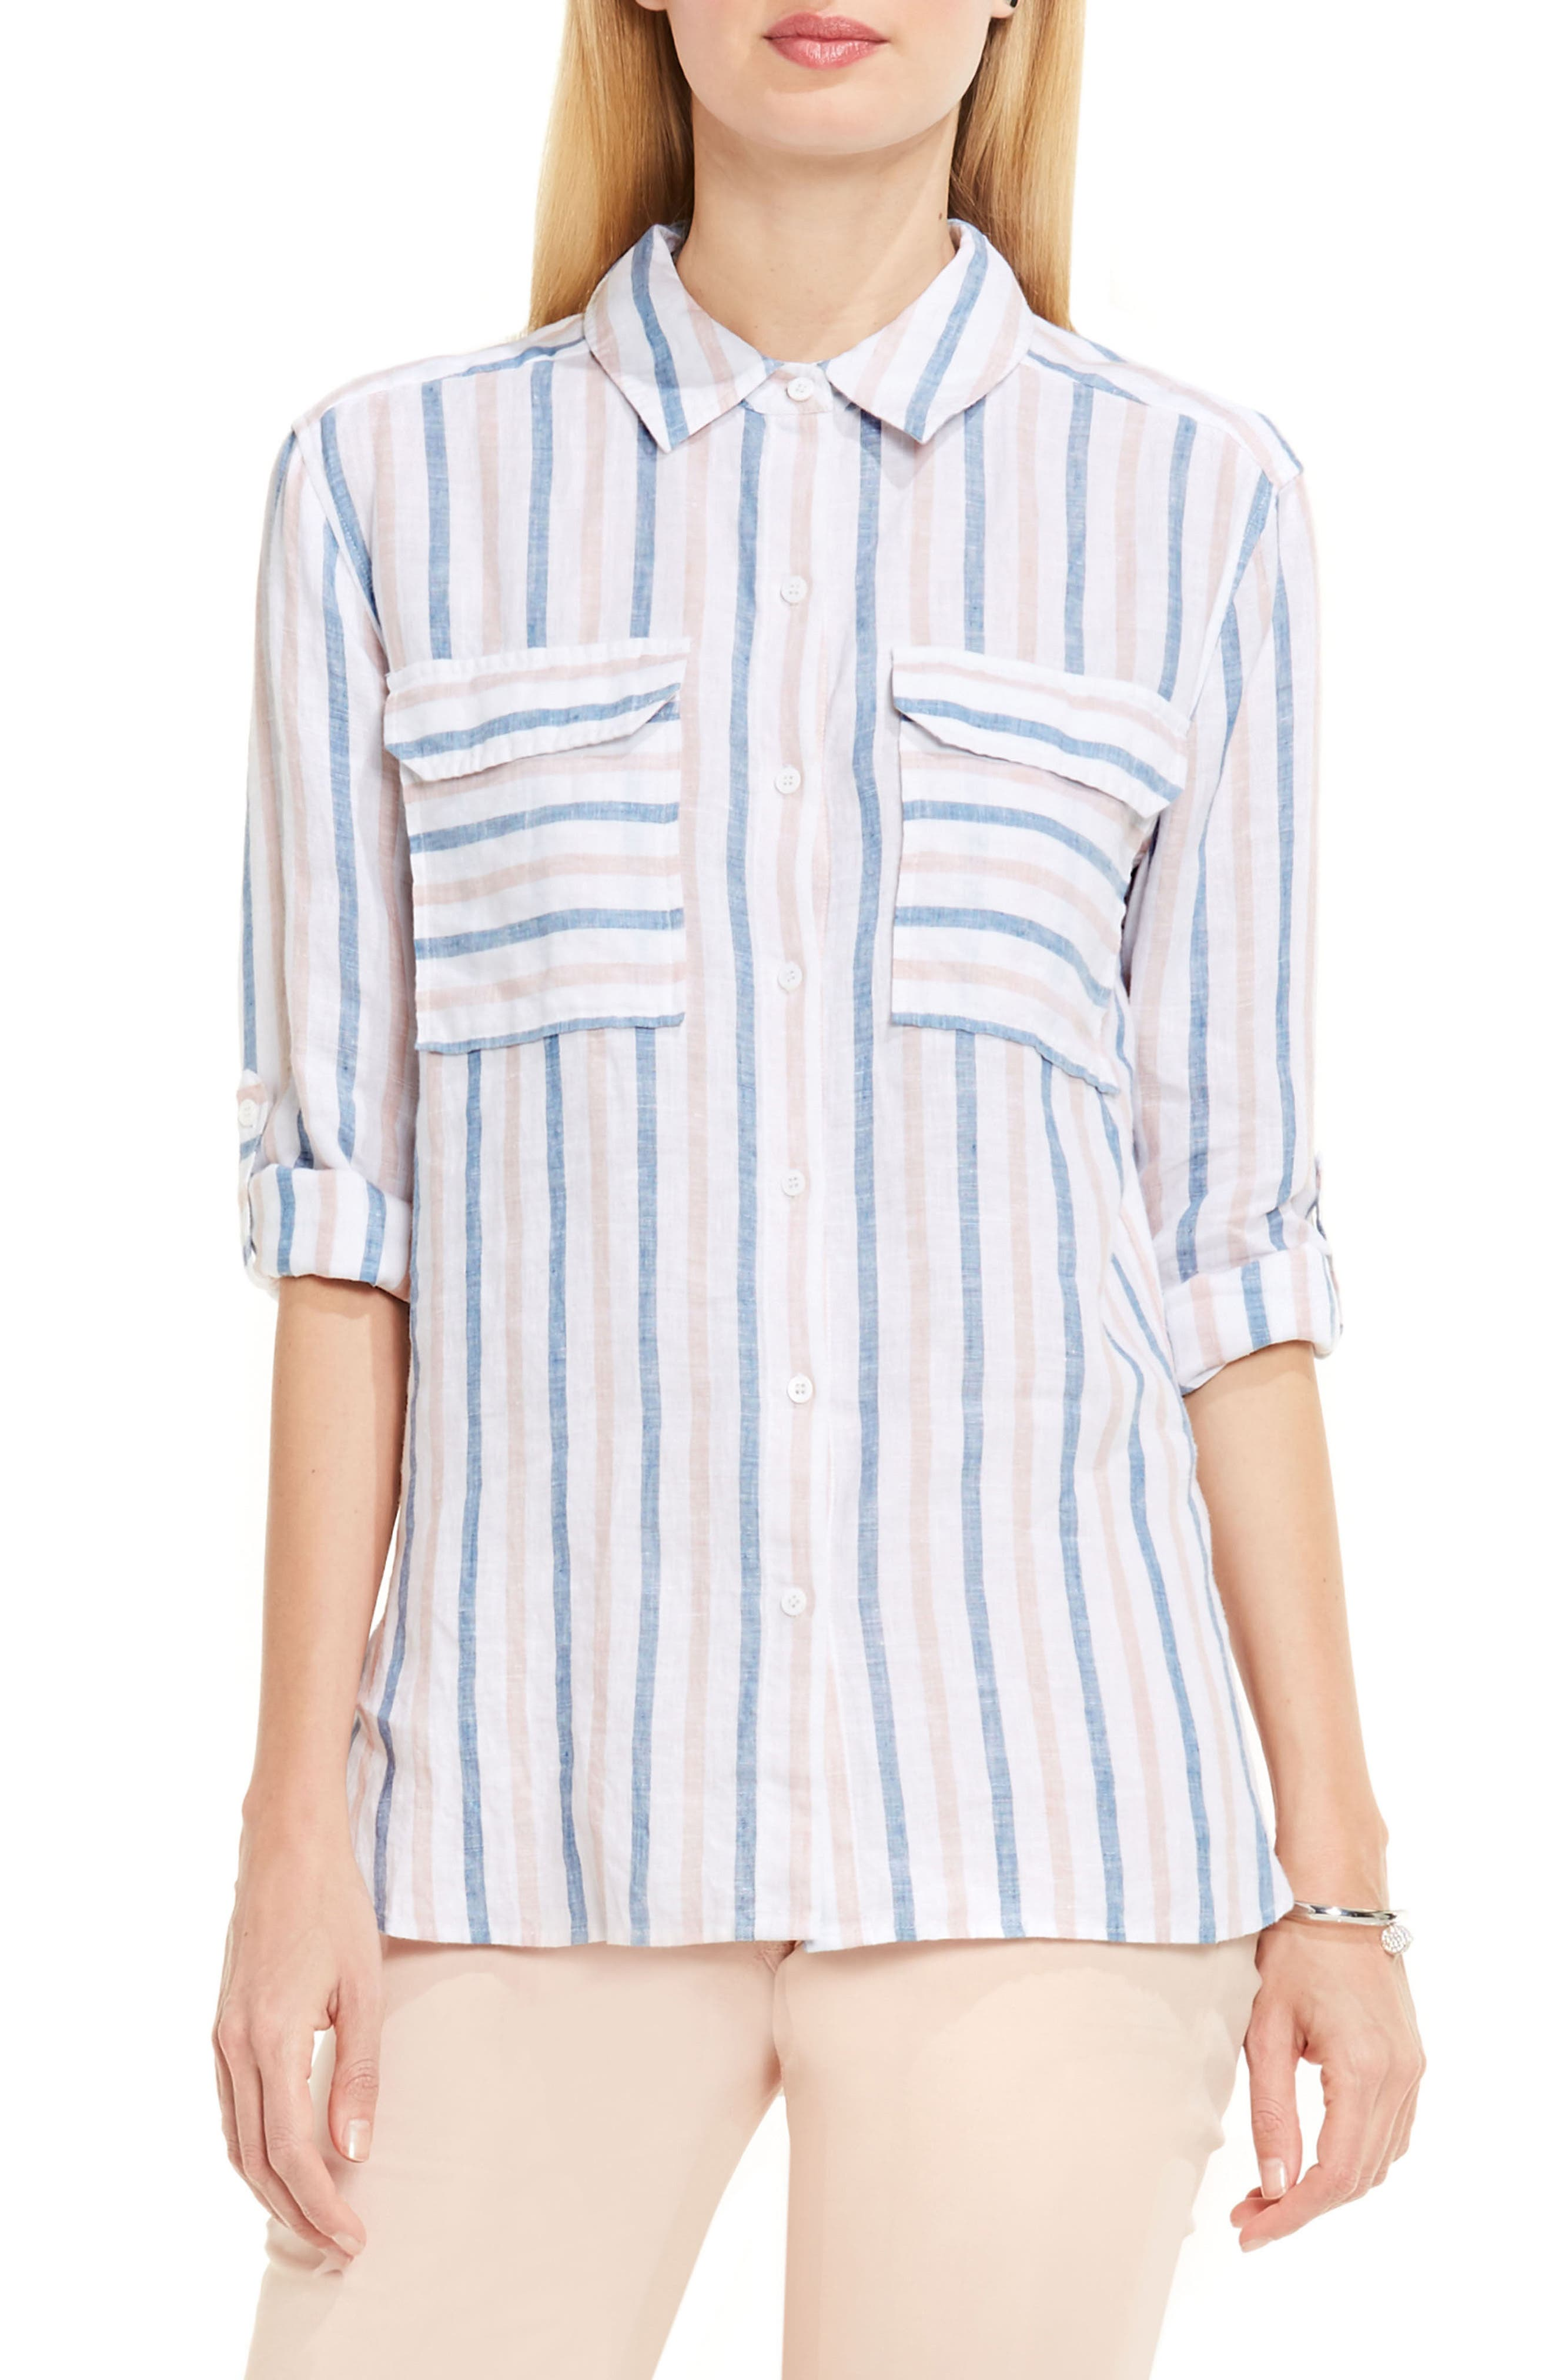 Main Image - Two by Vince Camuto Canopy Stripe Linen Shirt